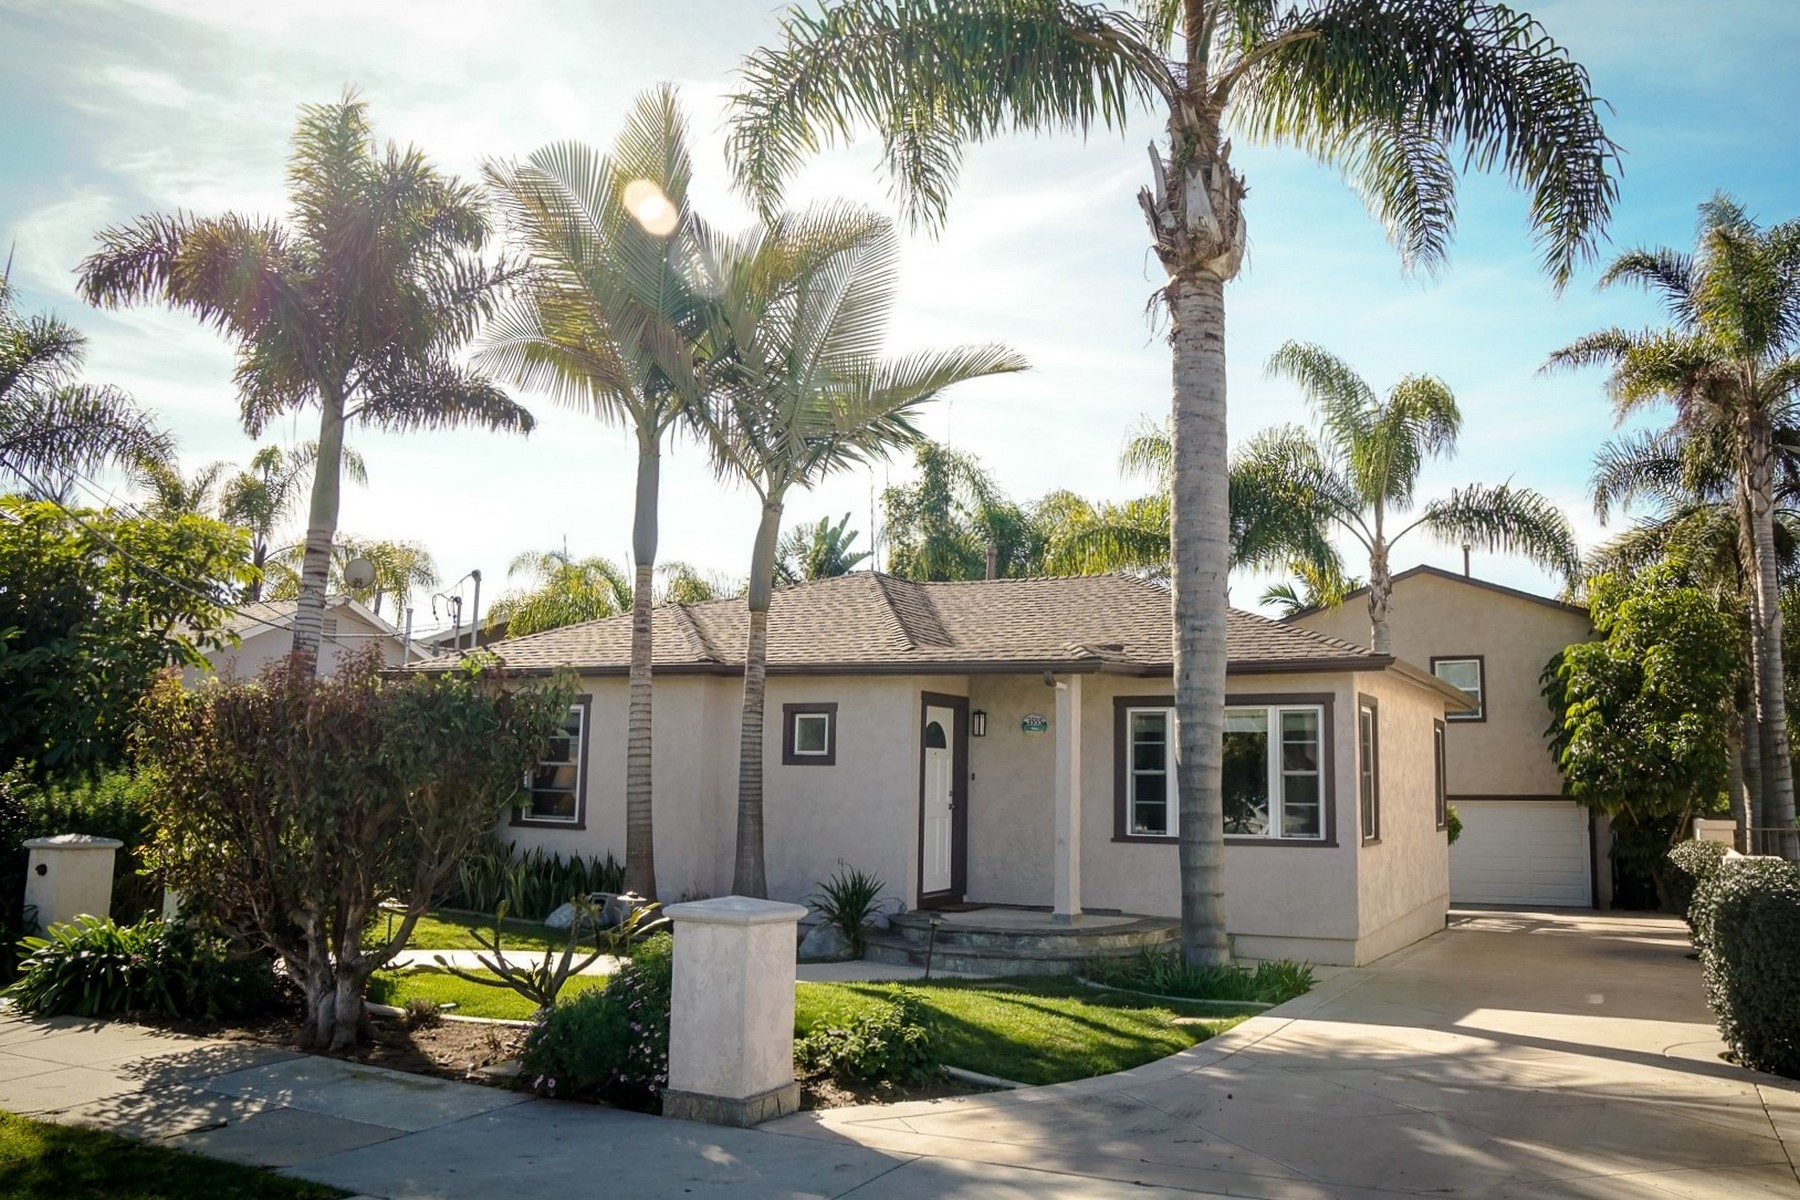 Single Family Home for Sale at 3555 Garfield Street 3555 Garfield Street Carlsbad, California 92008 United States